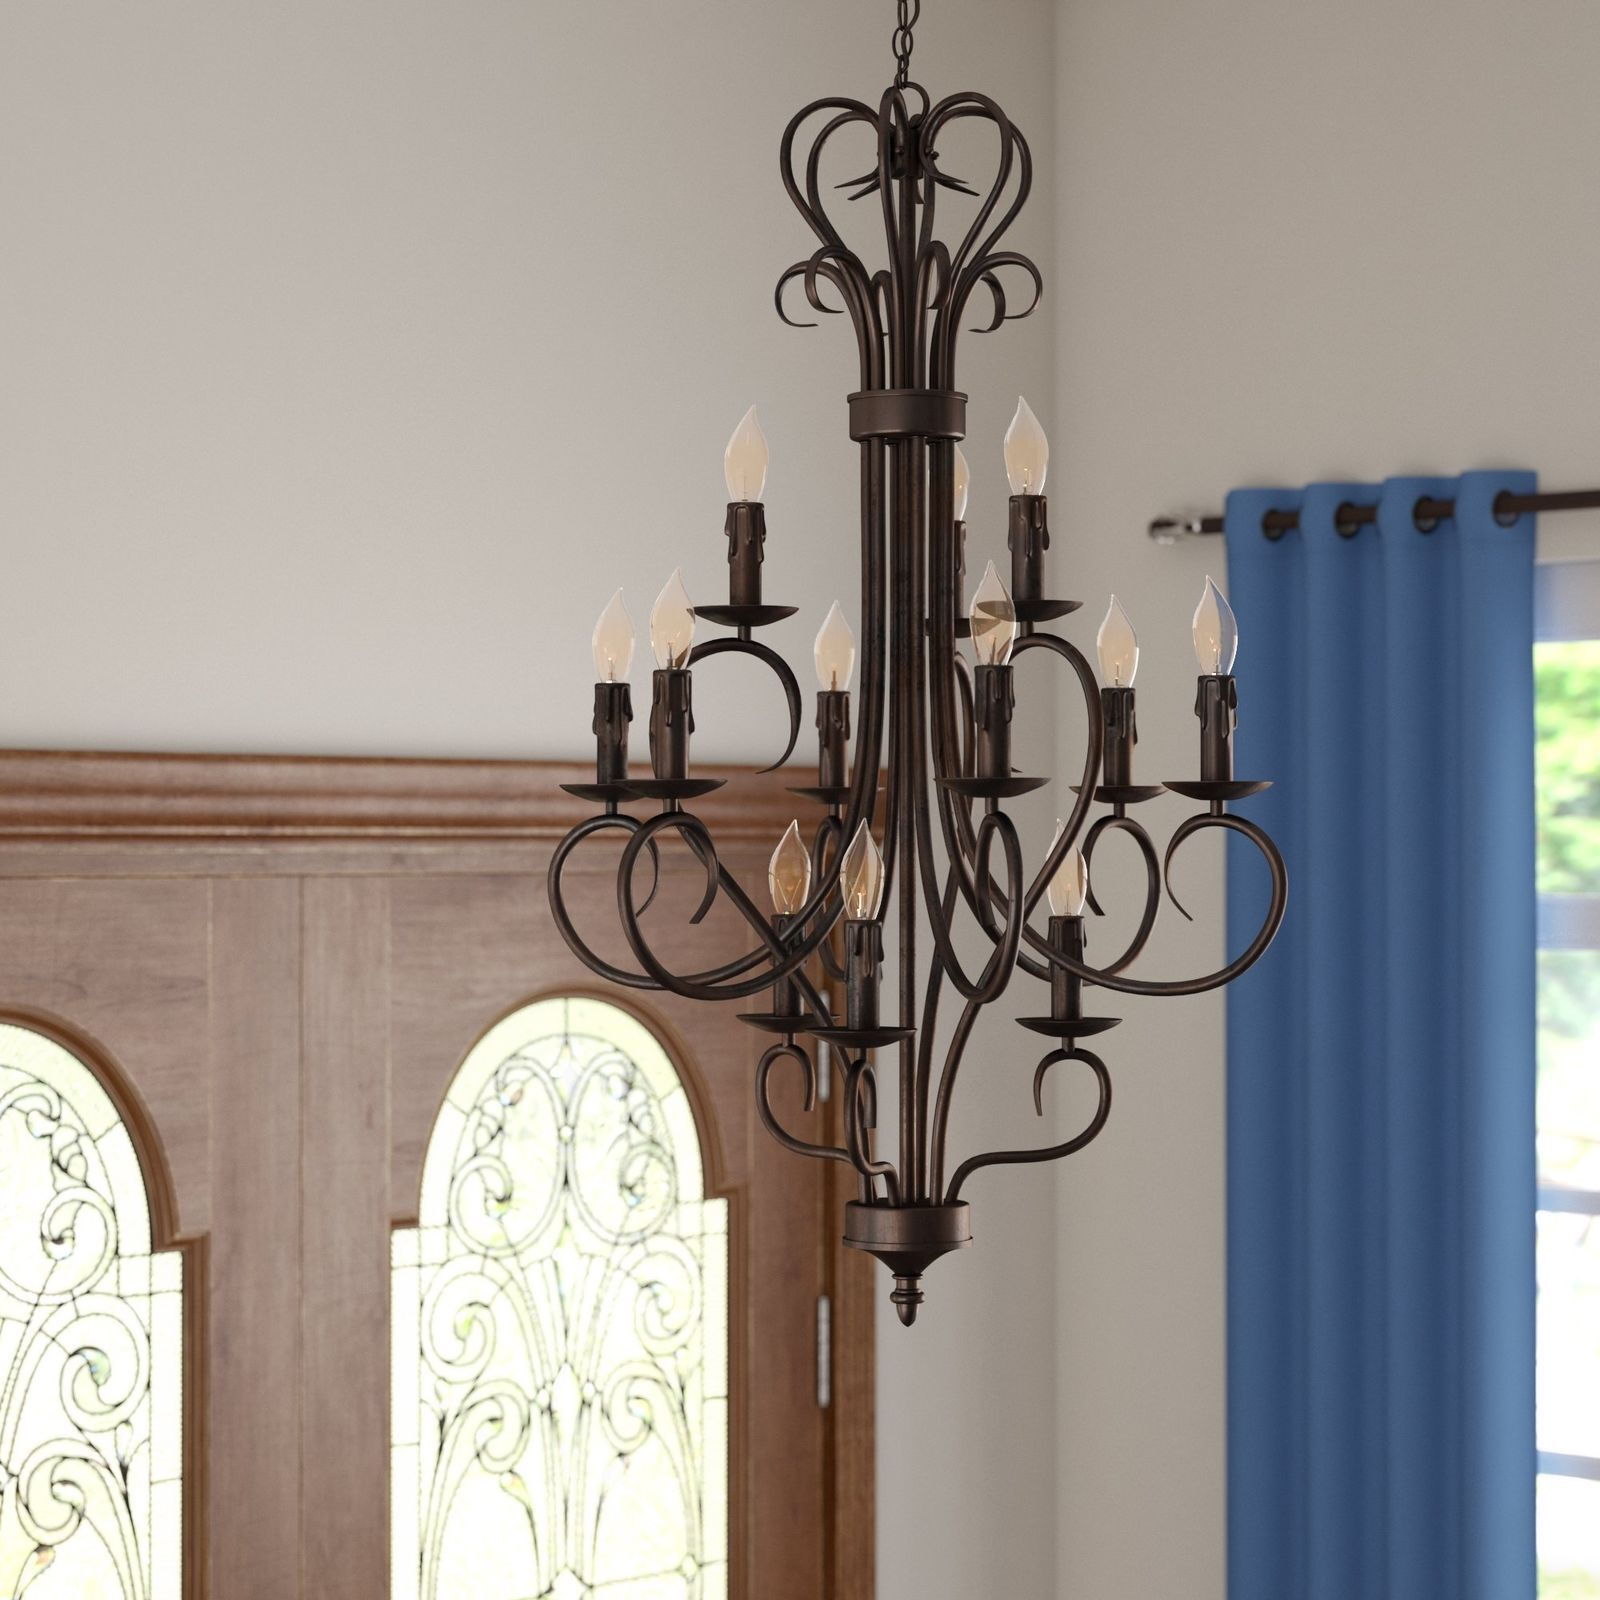 GoldEN LIGHTING THREE POSTS CASTINE 12-LIGHT CANDLE STYLE CHANDELIER NNB